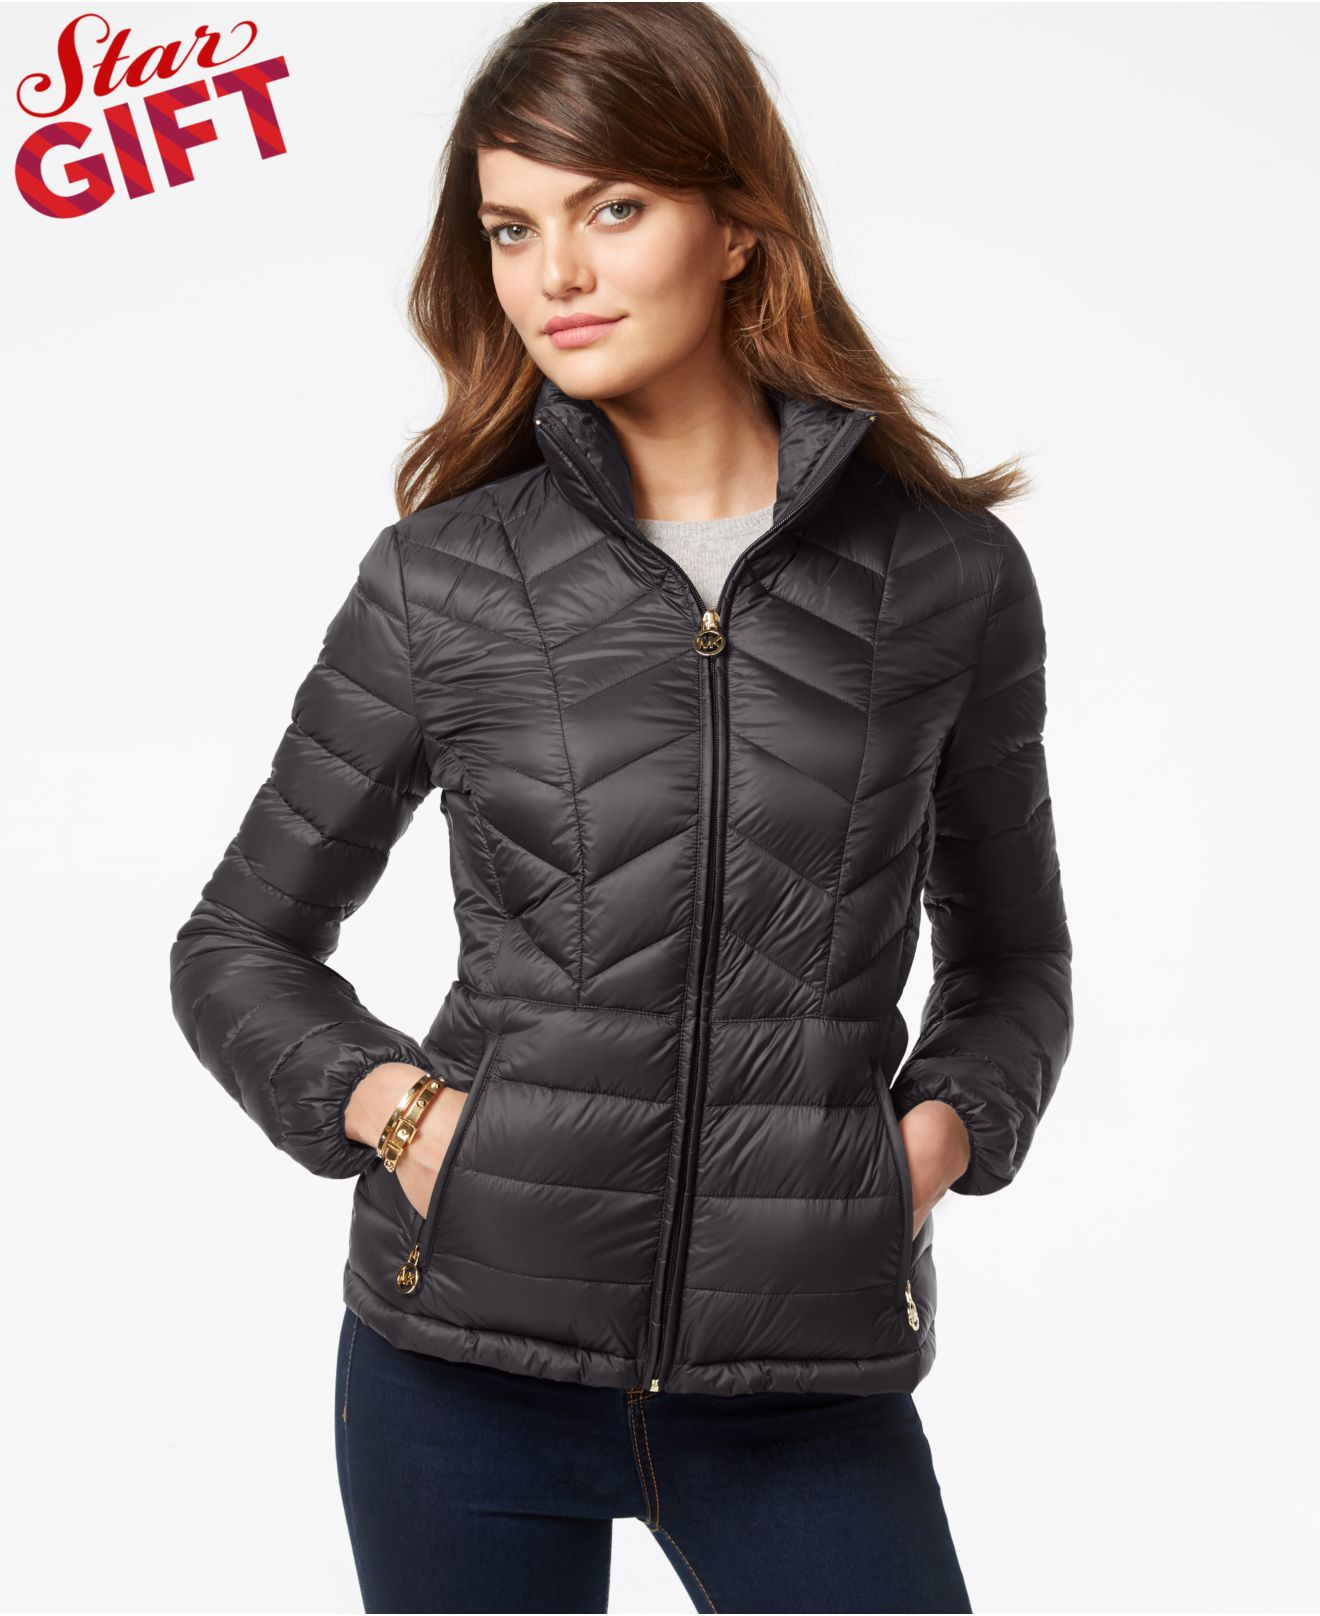 michael kors michael chevron quilted packable down jacket. Black Bedroom Furniture Sets. Home Design Ideas